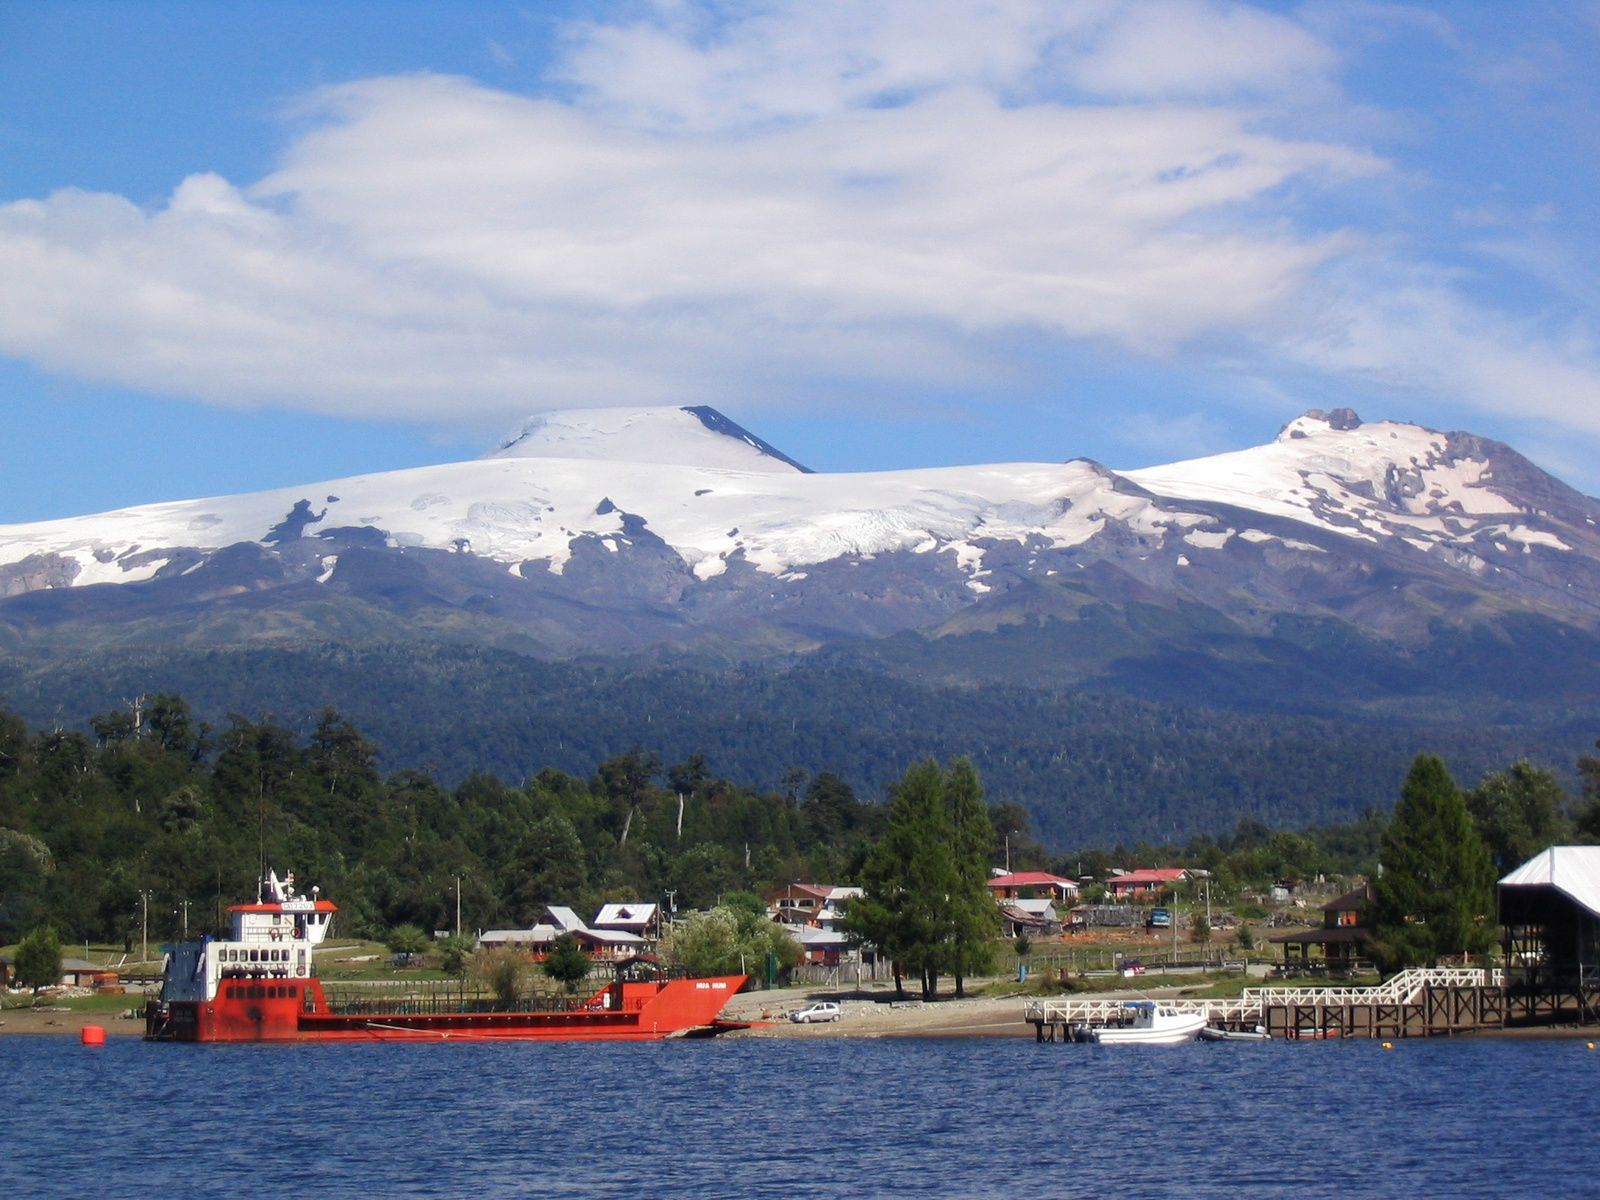 Mocho-Choshuenco complex - Volcán Mocho (left), Choshuenco (right) Puerto Fui and Lago Pirihueico (in the foreground). - picture Avodrocc